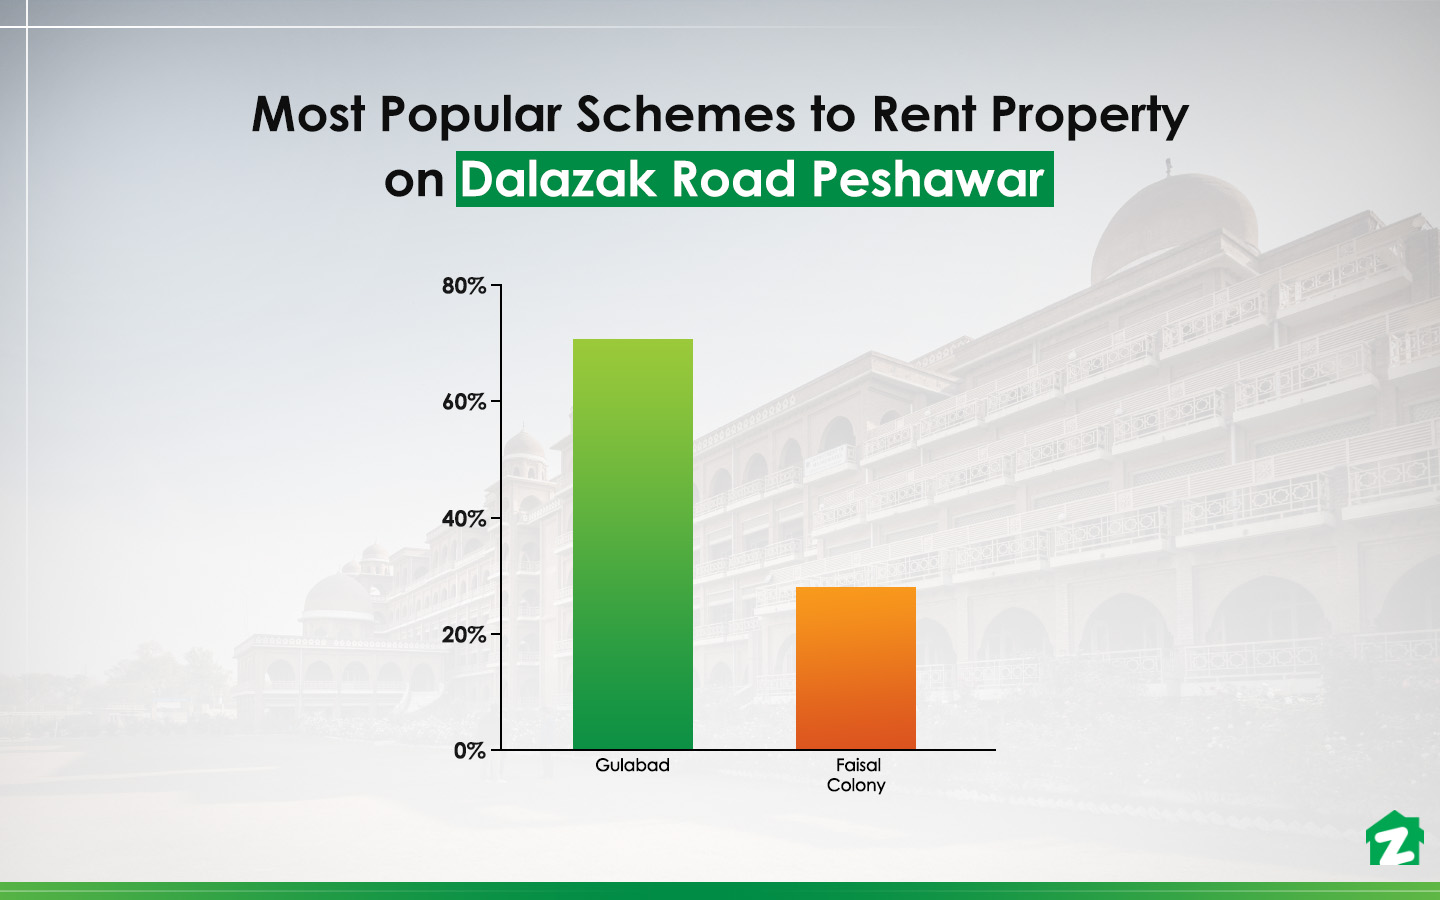 Top schemes on Dalazak Road for renting properties